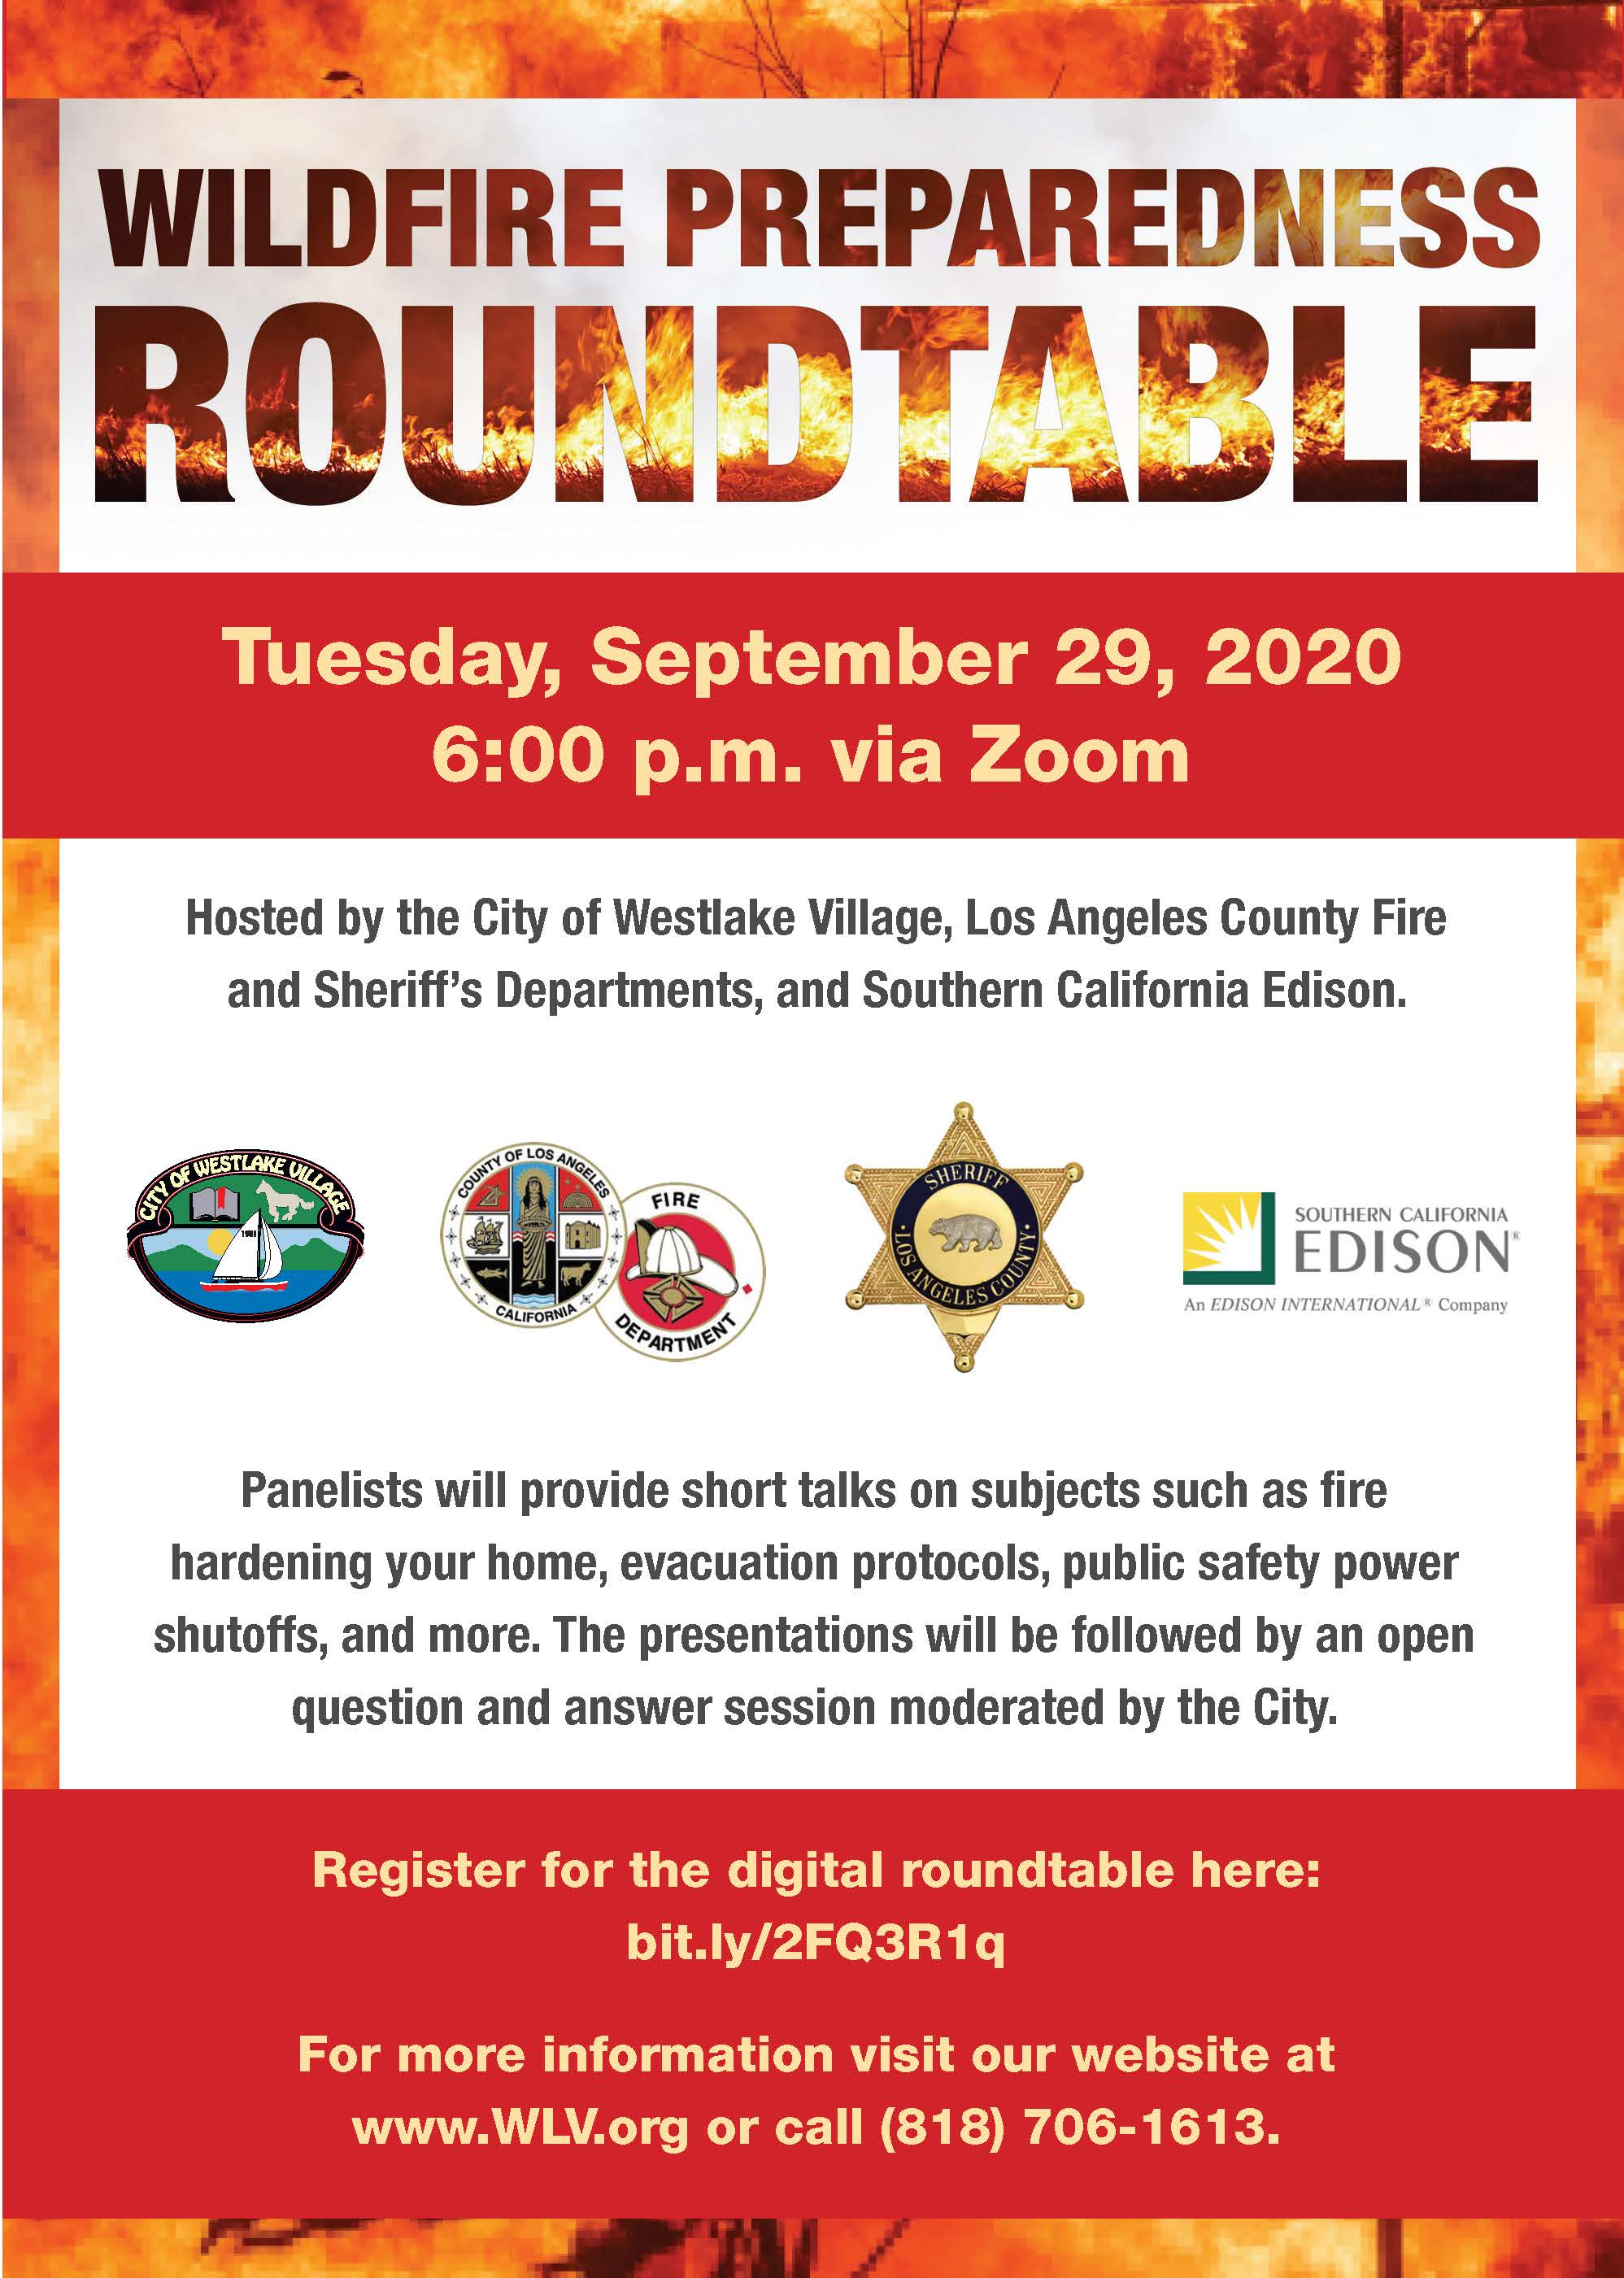 wlv_wildfire_roundtable FINAL